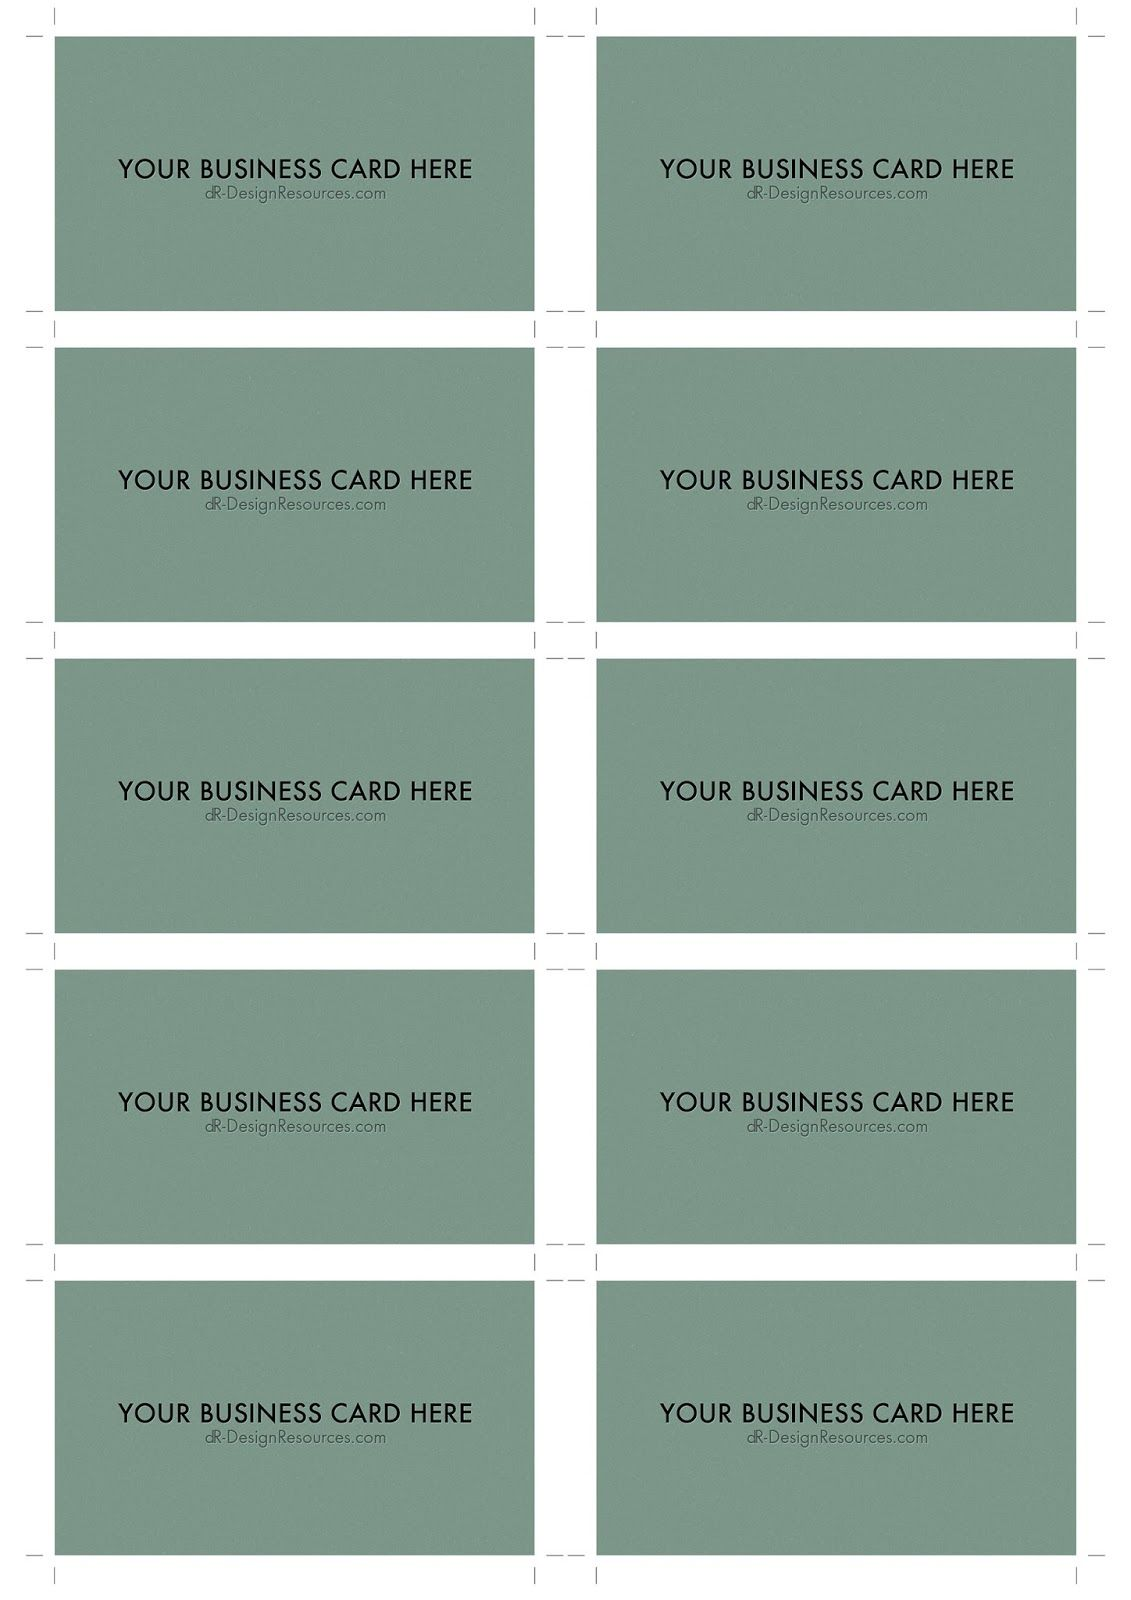 A4 business card template psd 10 per sheet business cards a4 business card template psd 10 per sheet cheaphphosting Choice Image